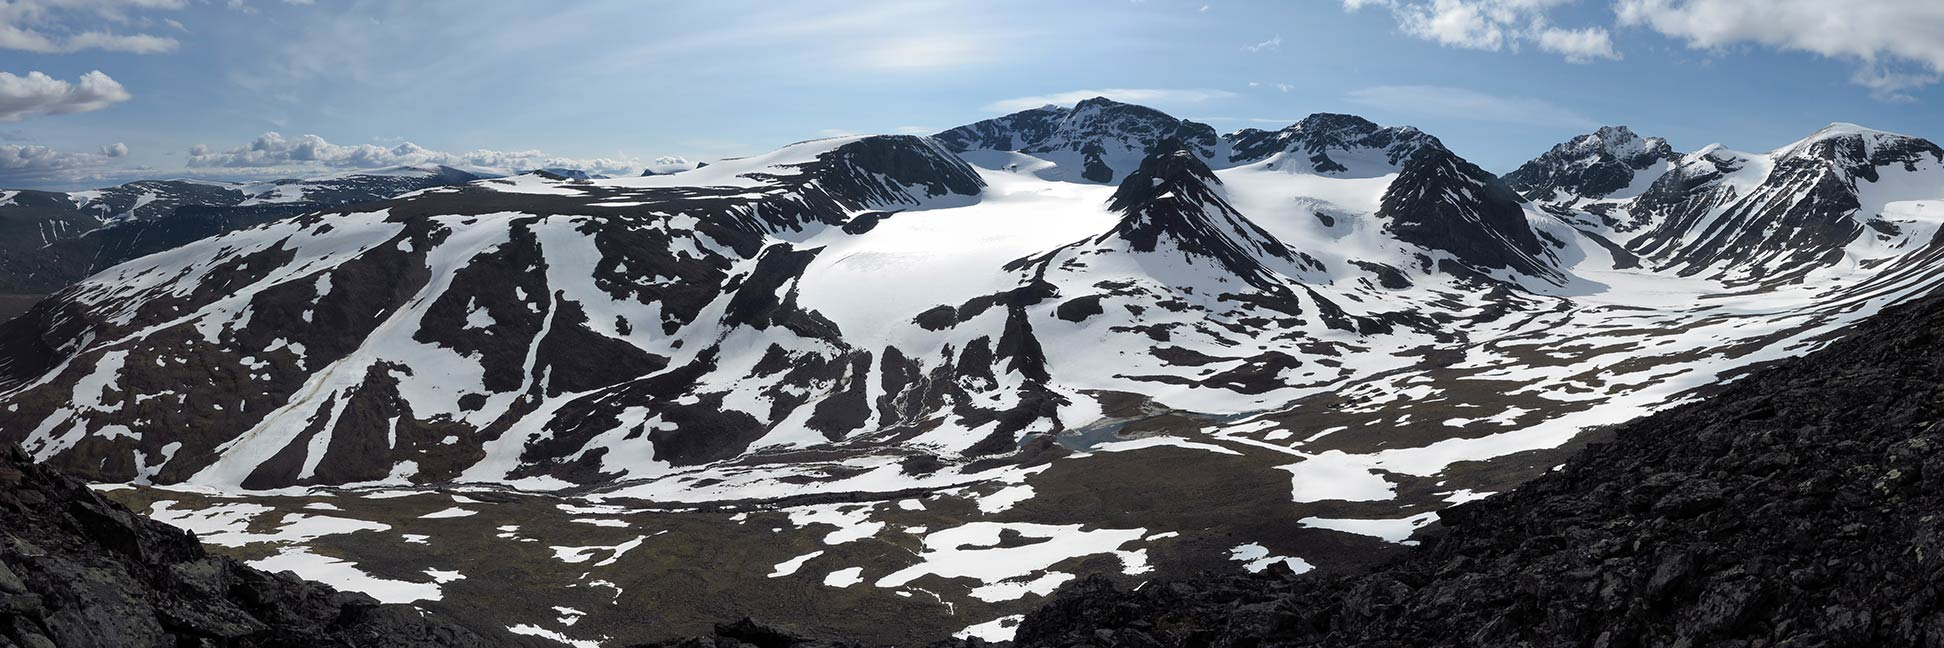 Panorama of the Tarfala valley with Kebnekaise, Sweden's highest mountain.